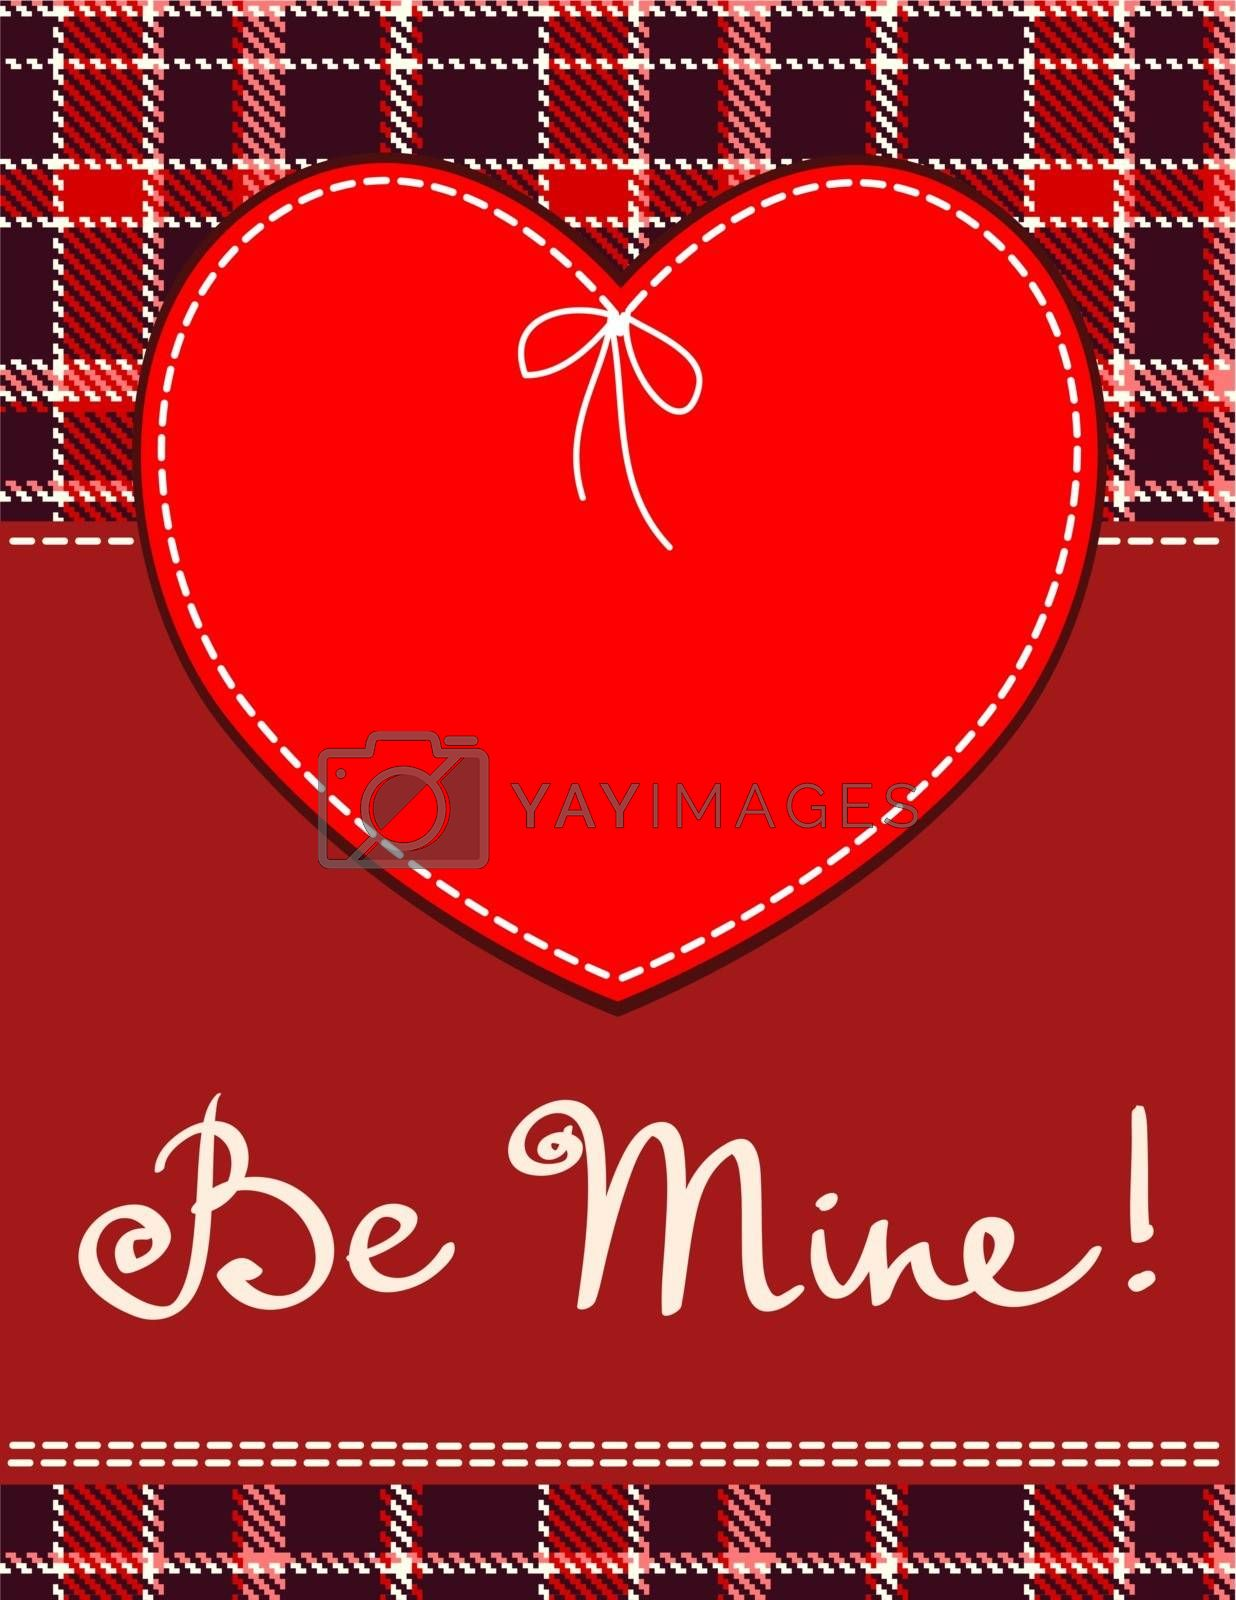 Heart in stitched textile style. Vector red heart textile label with 'be mine' hand lettering